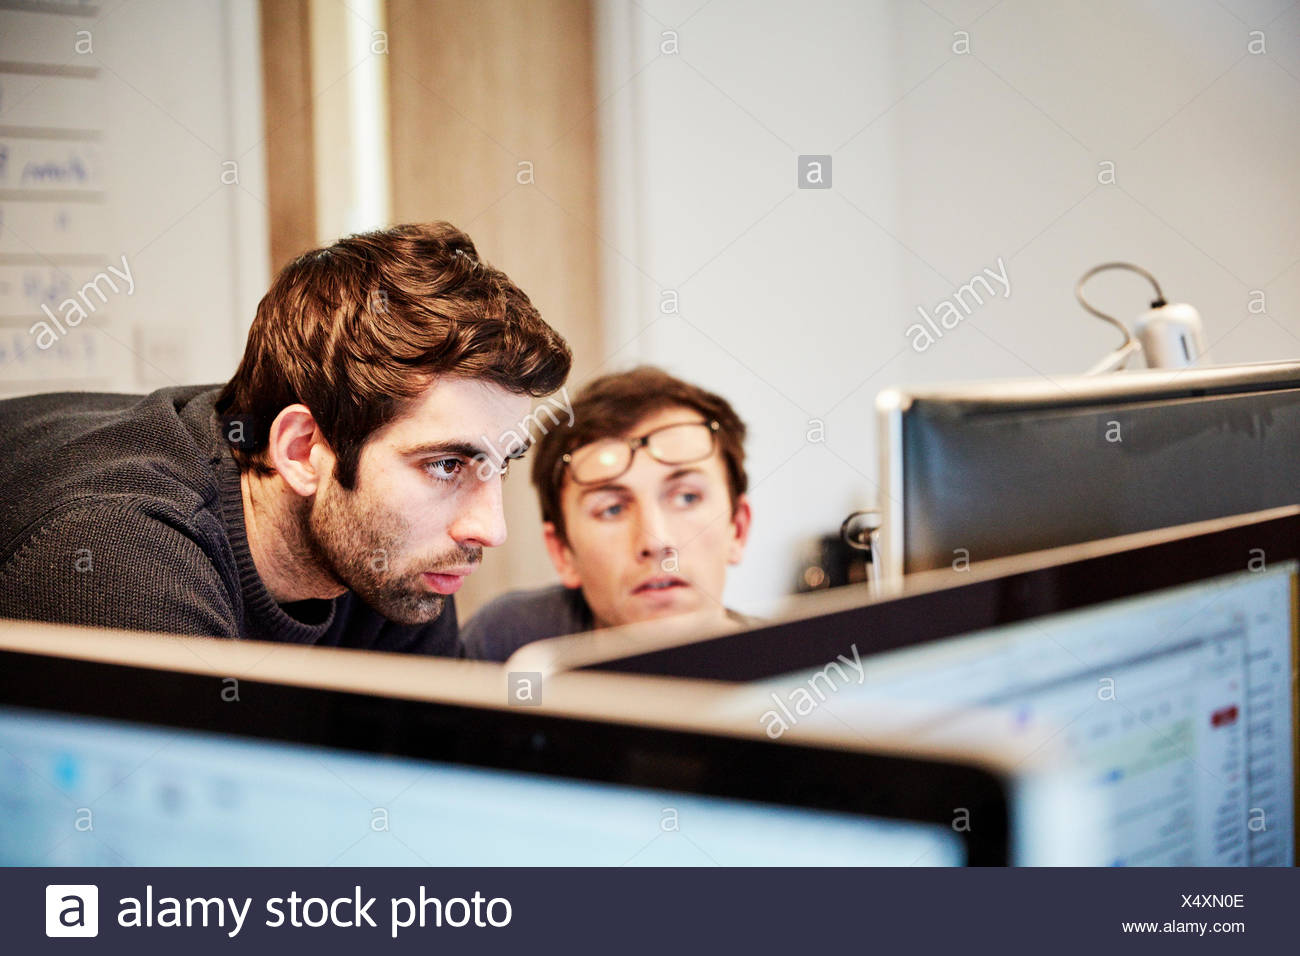 A furniture workshop ,Two people discussing a design referring to drawings and laptop computers - Stock Image